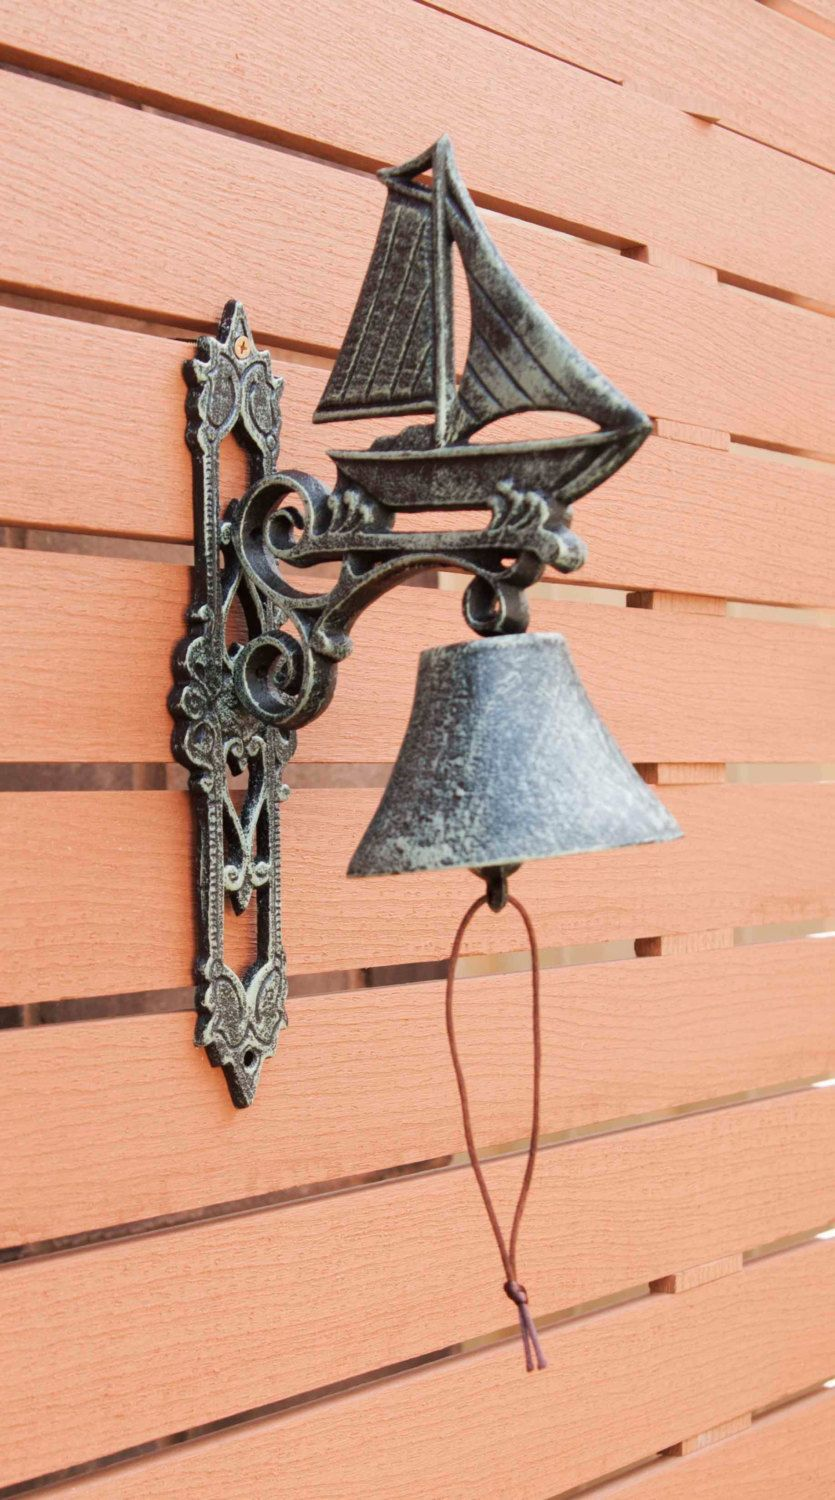 Cast Iron Doorbell Sail Boat Decorative Hanging Door Bell Antique Rust And Verdigris By Maddingtoncast On Etsy